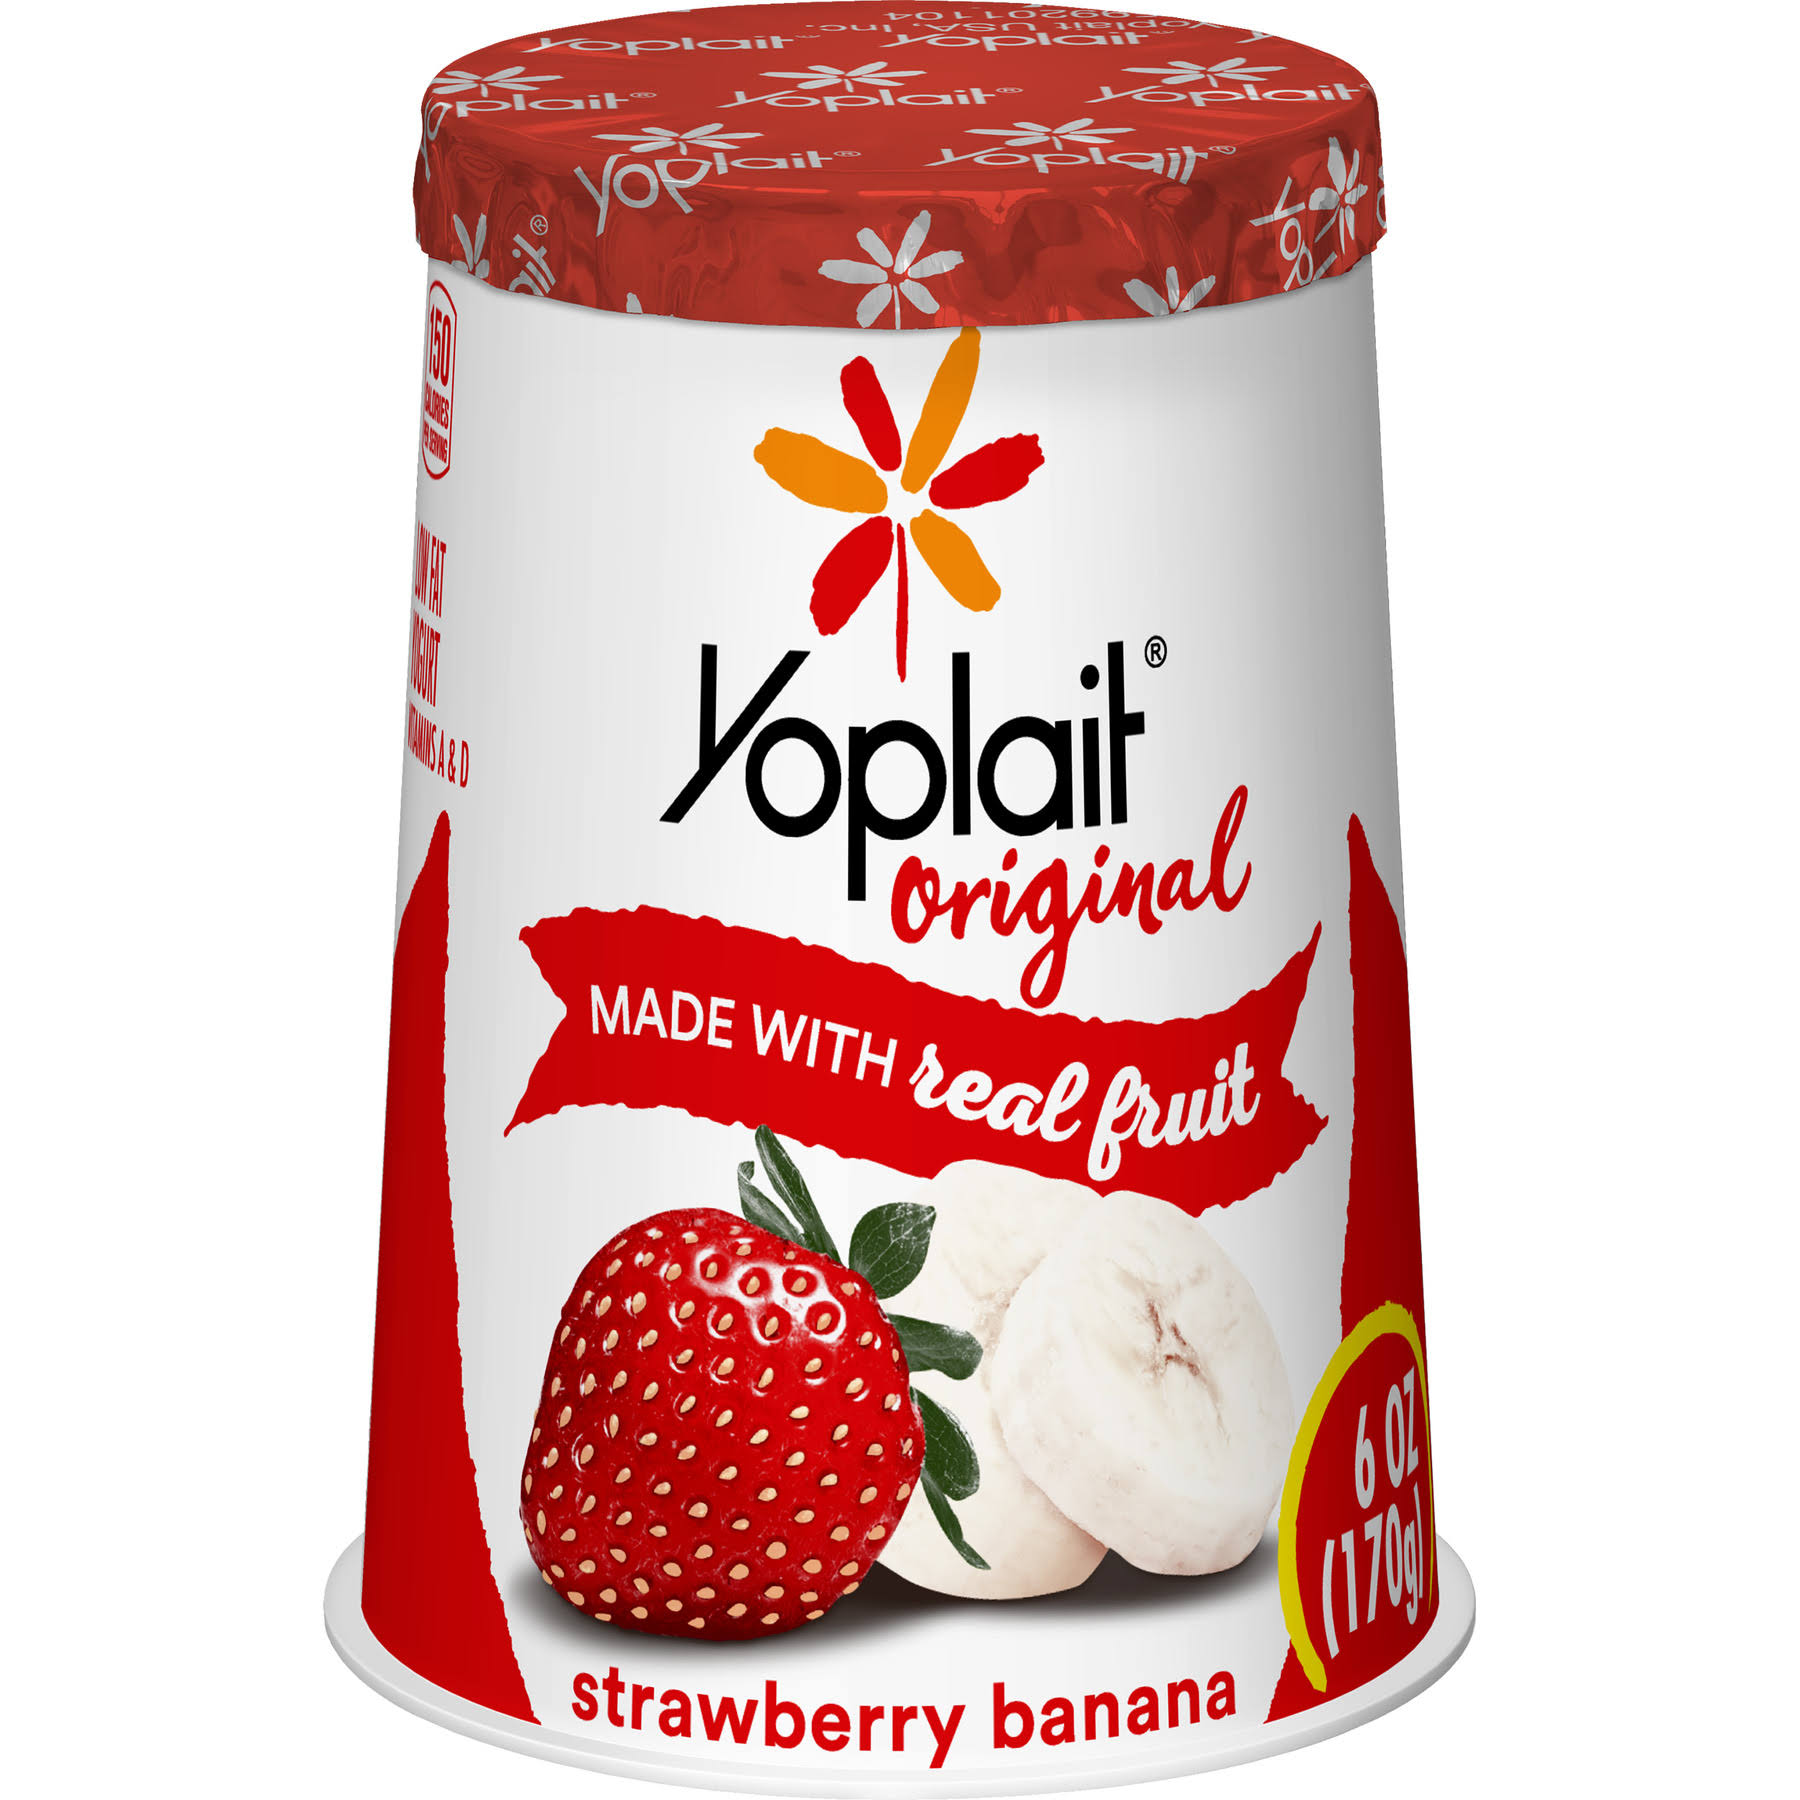 Yoplait Original Low Fat Yogurt - Strawberry Banana, 6oz